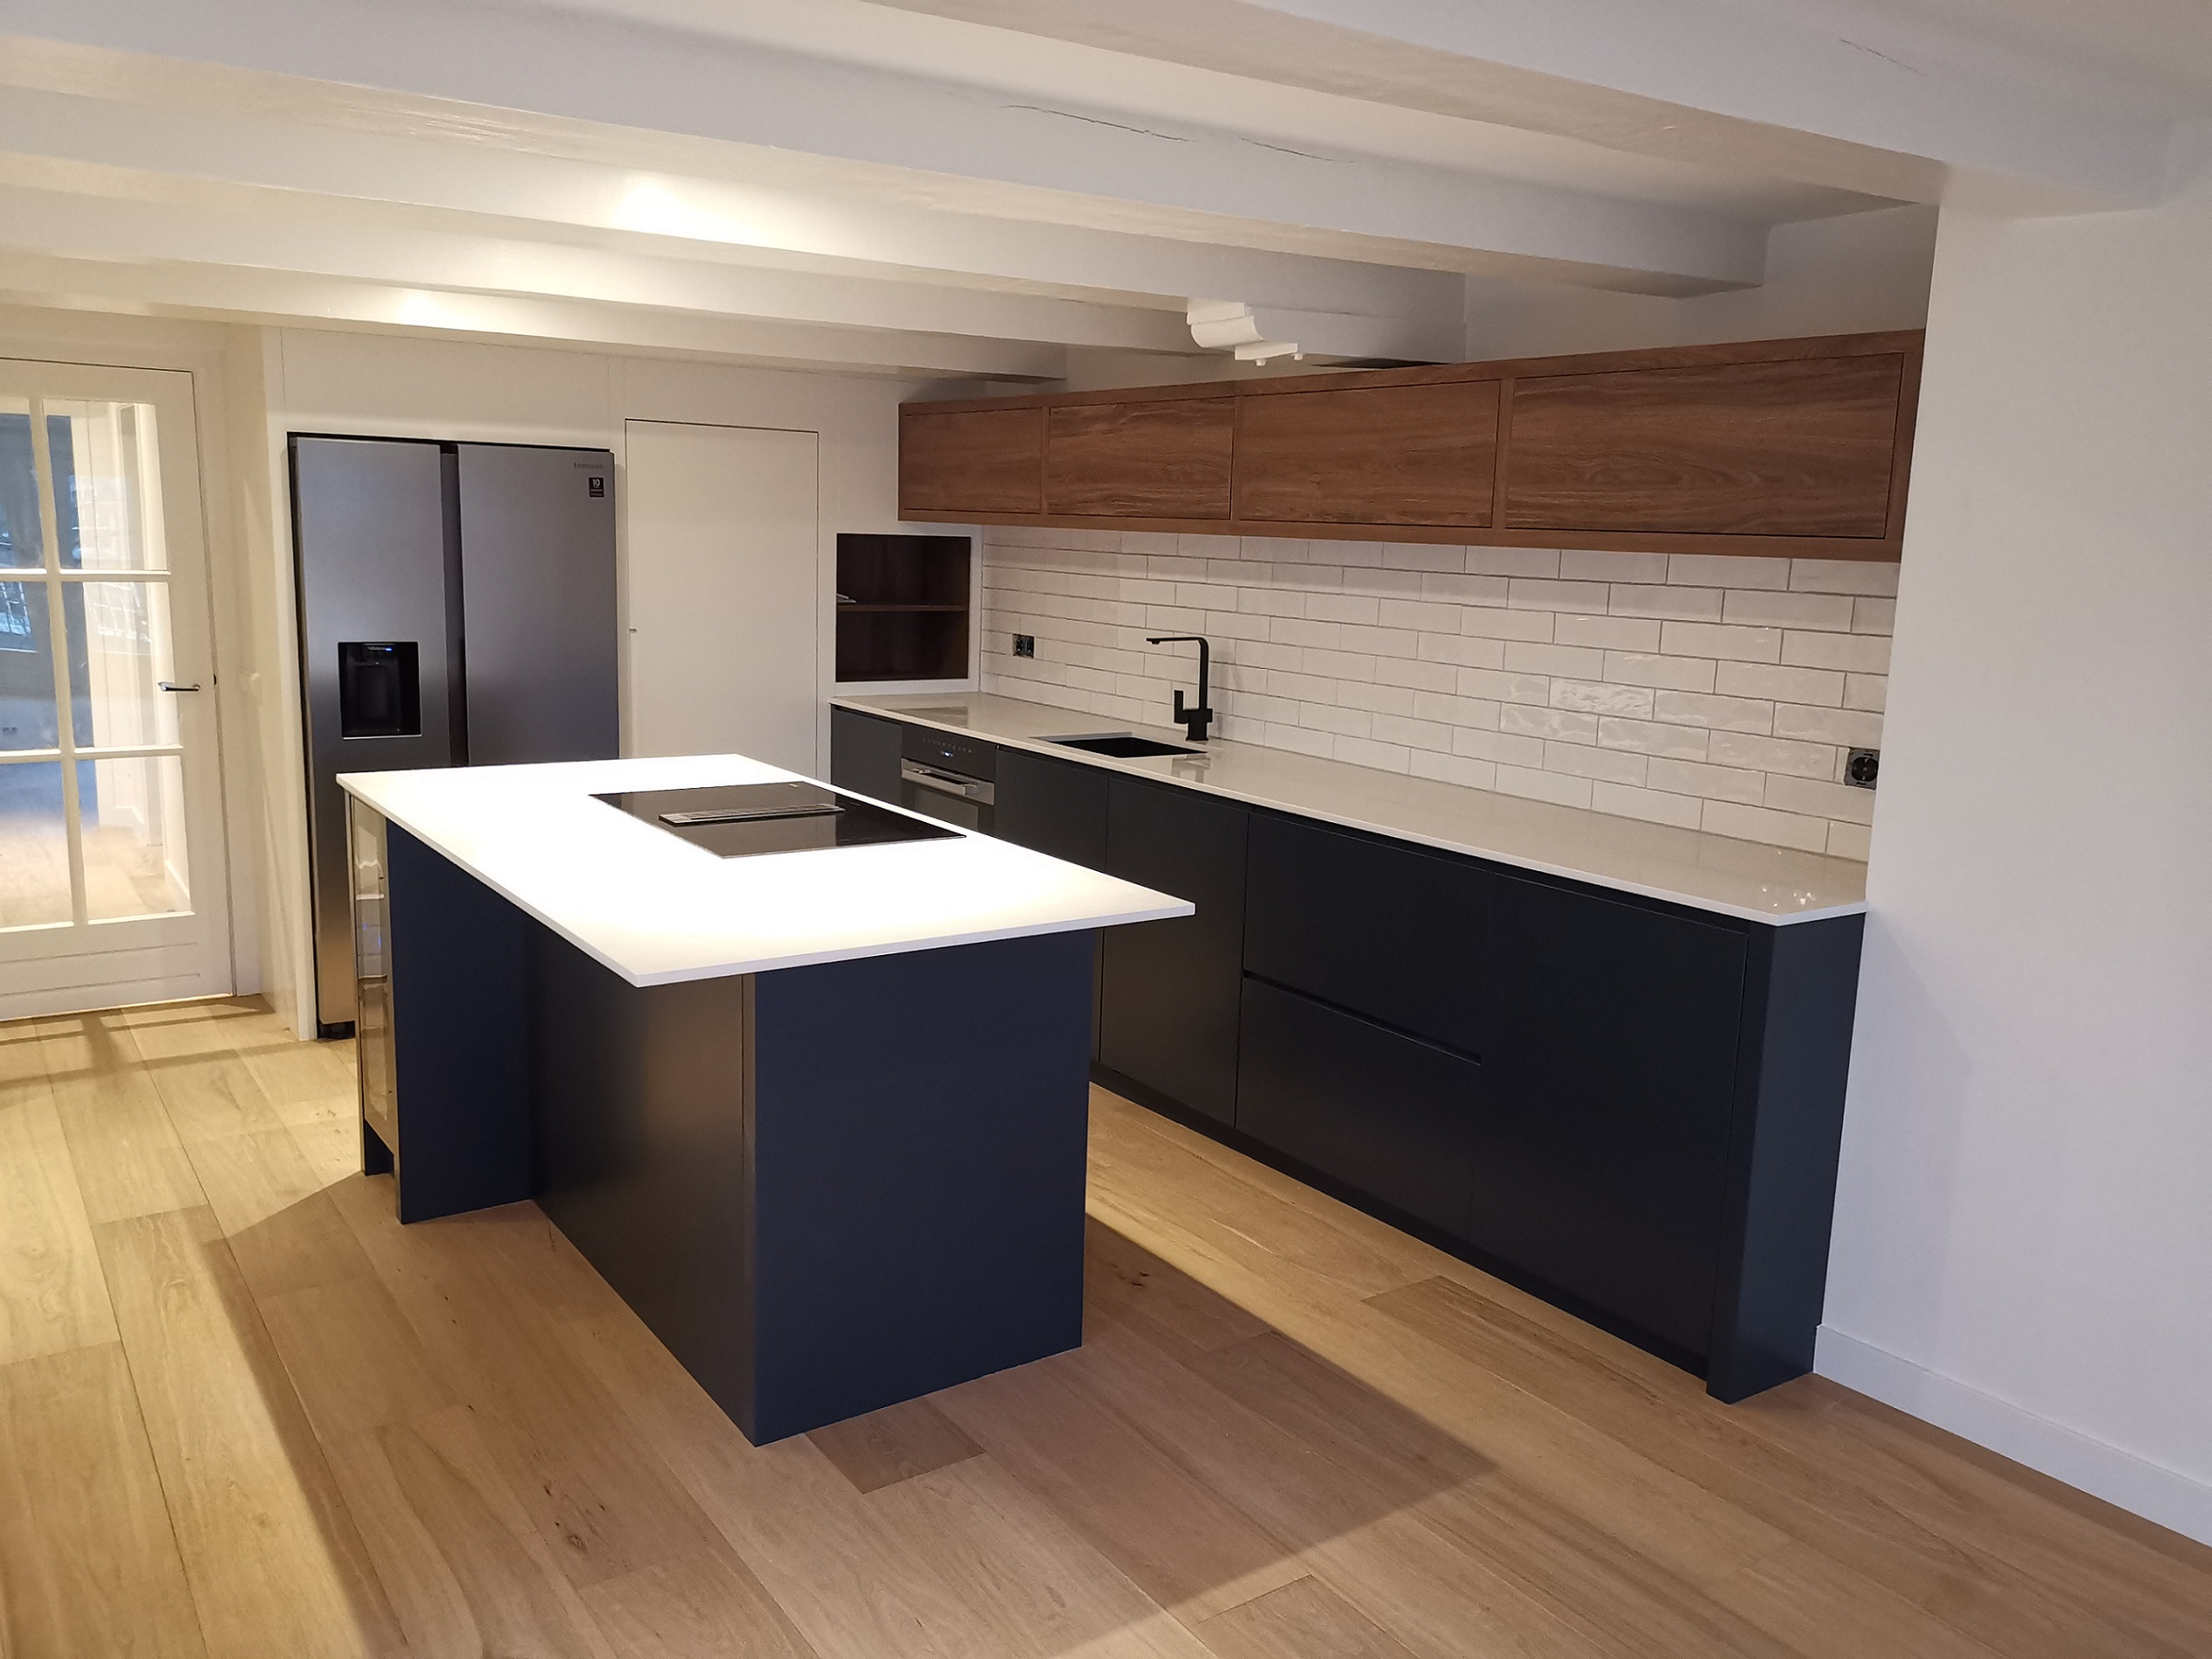 Bespoke kitchen Amsterdam